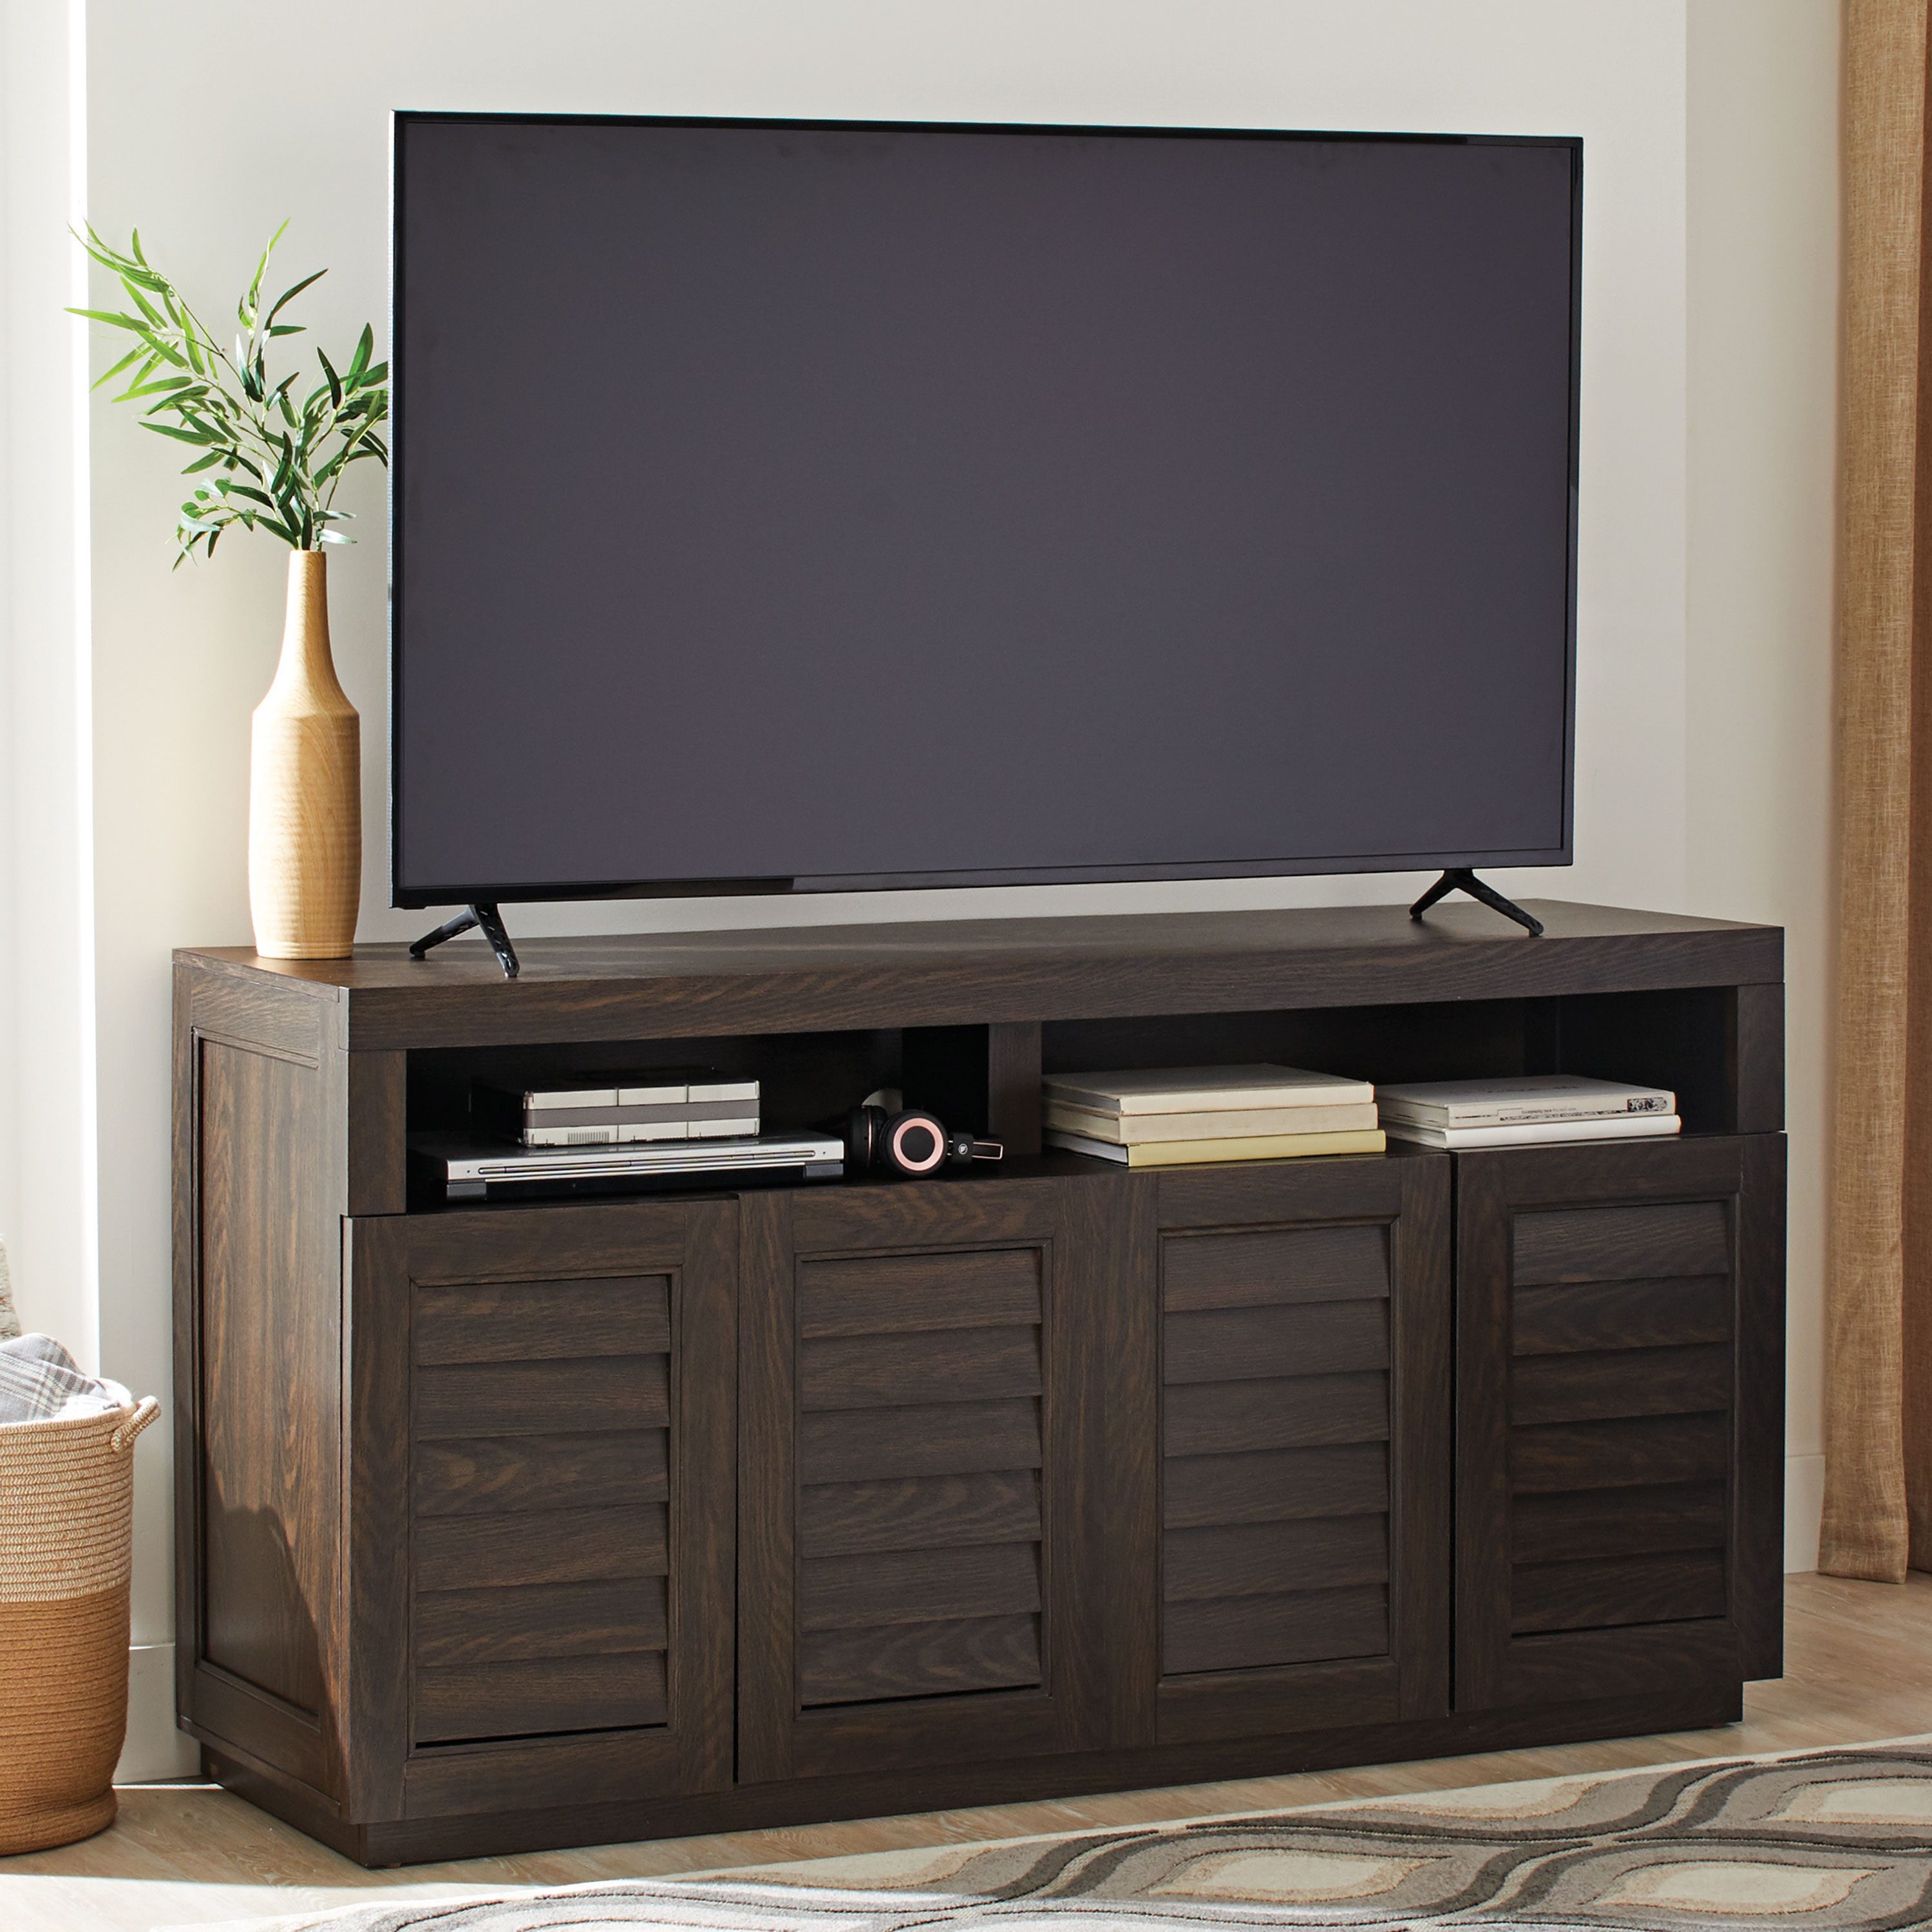 "Better Homes & Gardens Ellis Shutter TV Storage Cabinet for TVs up to 75"", Dark Oak Finish"